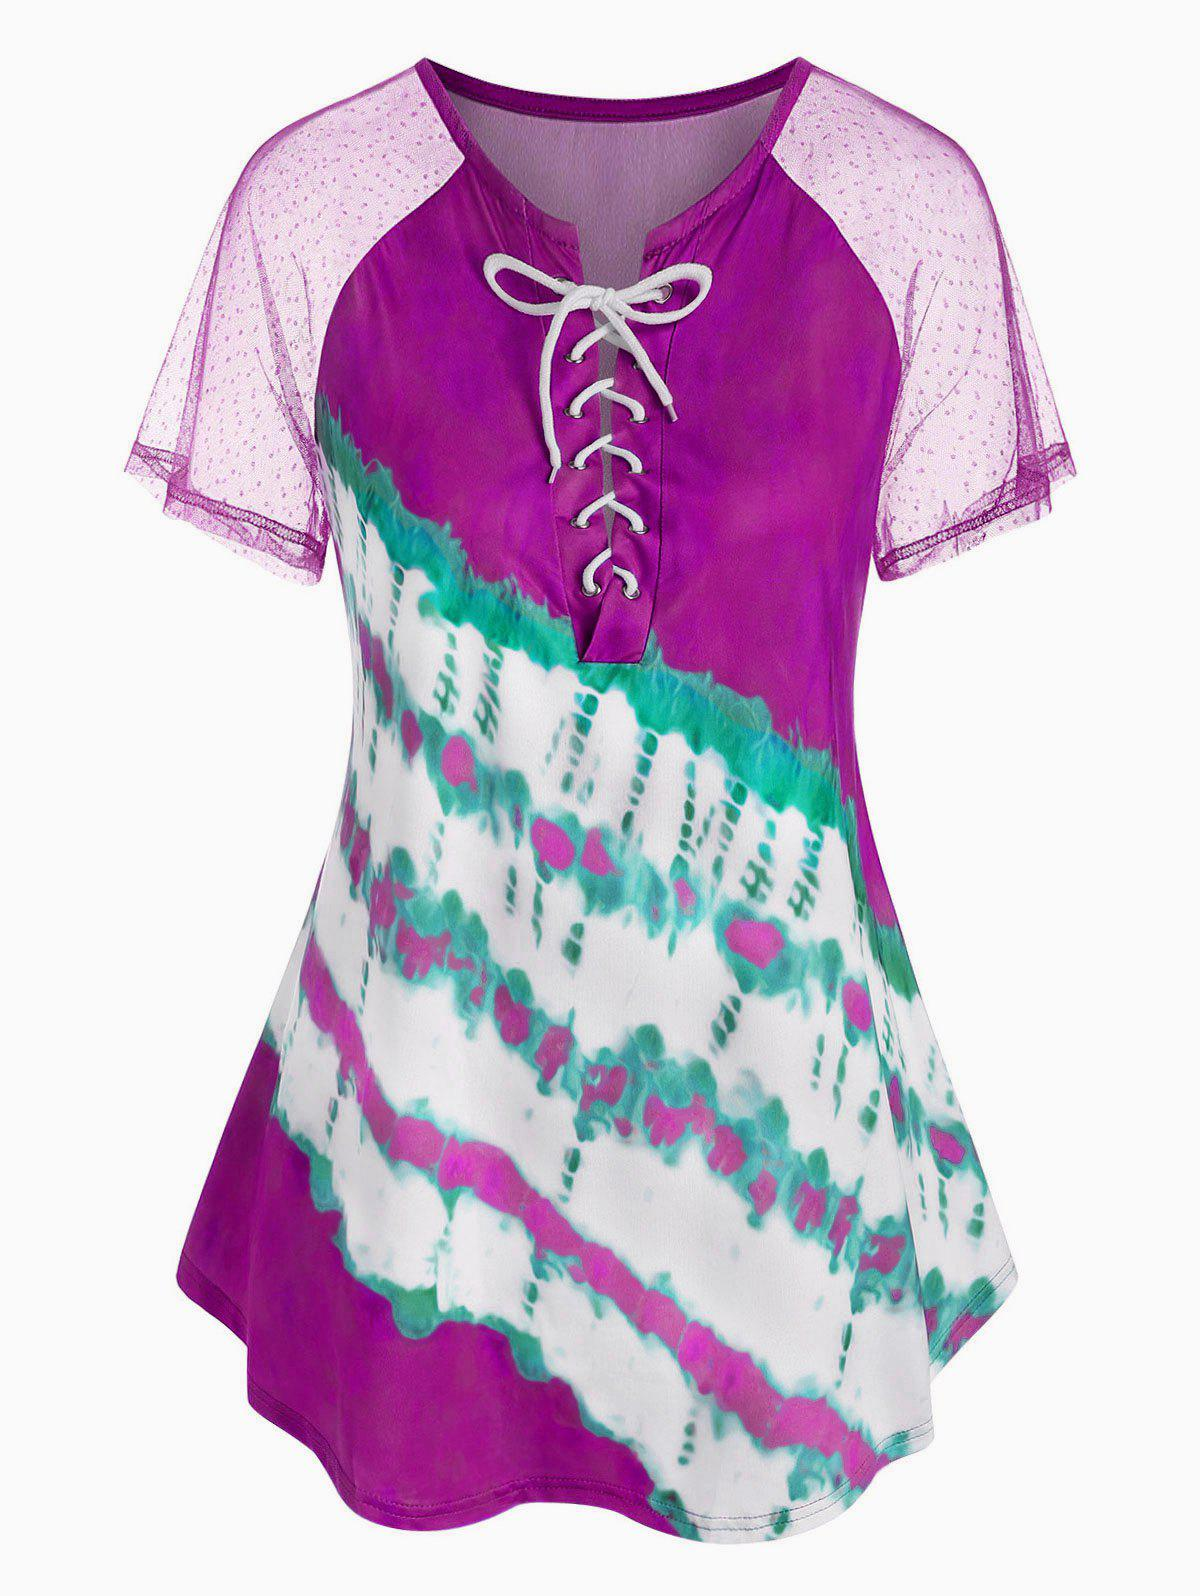 Plus Size Tie Dye Lace Up T Shirt - PURPLE L